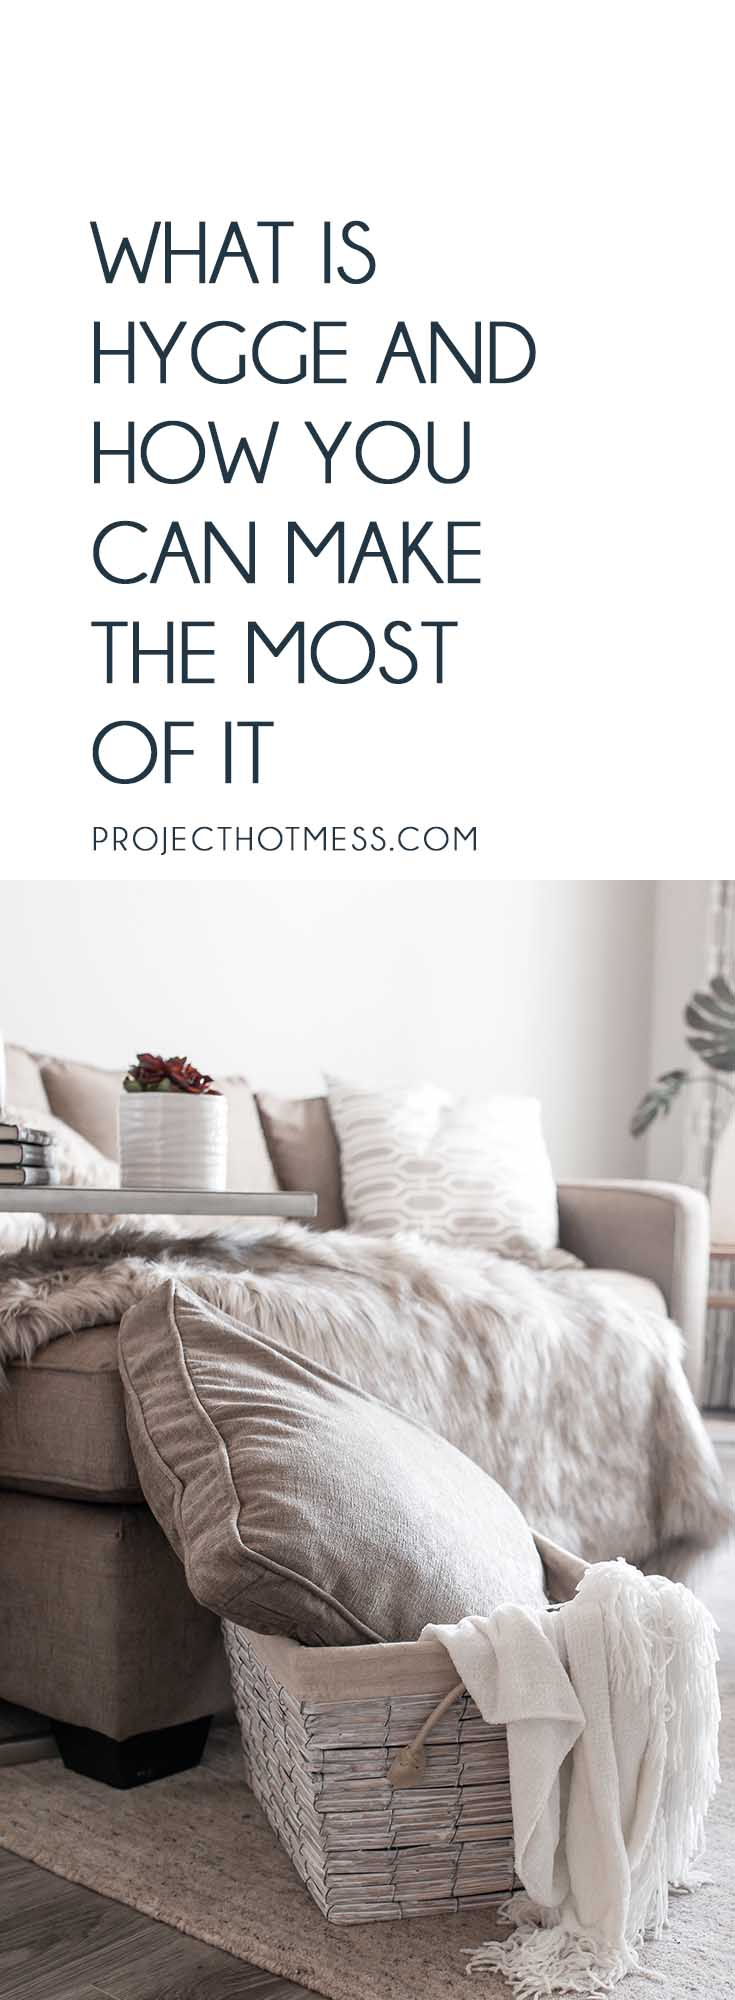 The concept of Hygge is everywhere at the moment, especially on Pinterest. But what is Hygge? And how can you add it into your life? Read on to find out how to make it part of your lifestyle, during any time of the year. Hygge | Hygge Home | Hygge Decor | Hygge Inspiration | Hygge Summer | Hygge Lifestyle | Hygge Bedroom | Hygge Ideas | Hygge Living Room | Hygge Spaces